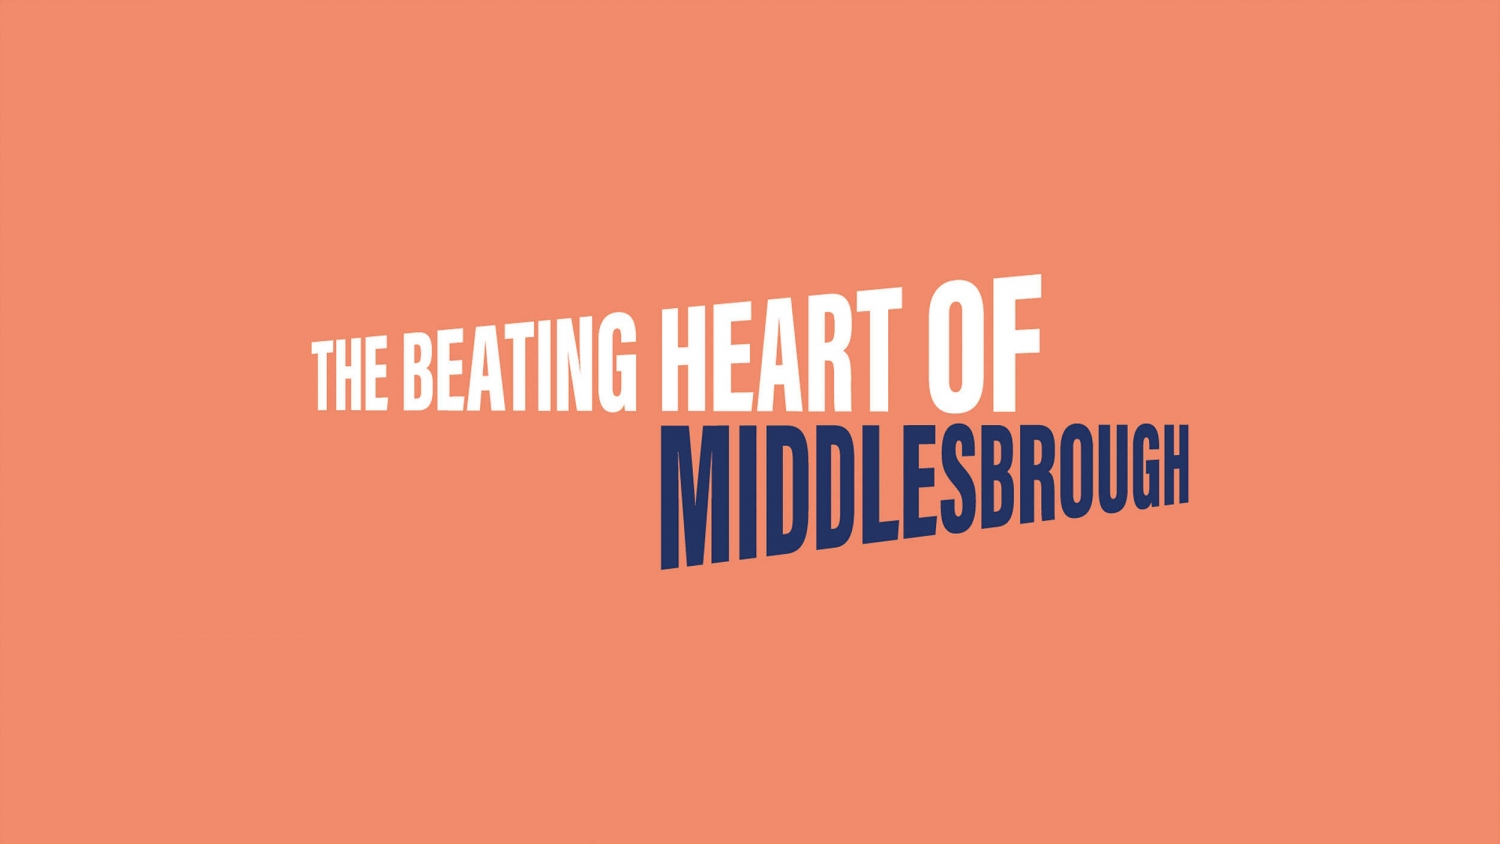 Branding, brand purpose and brand values for music venue Middlesbrough Town Hall by Altogether Creative.